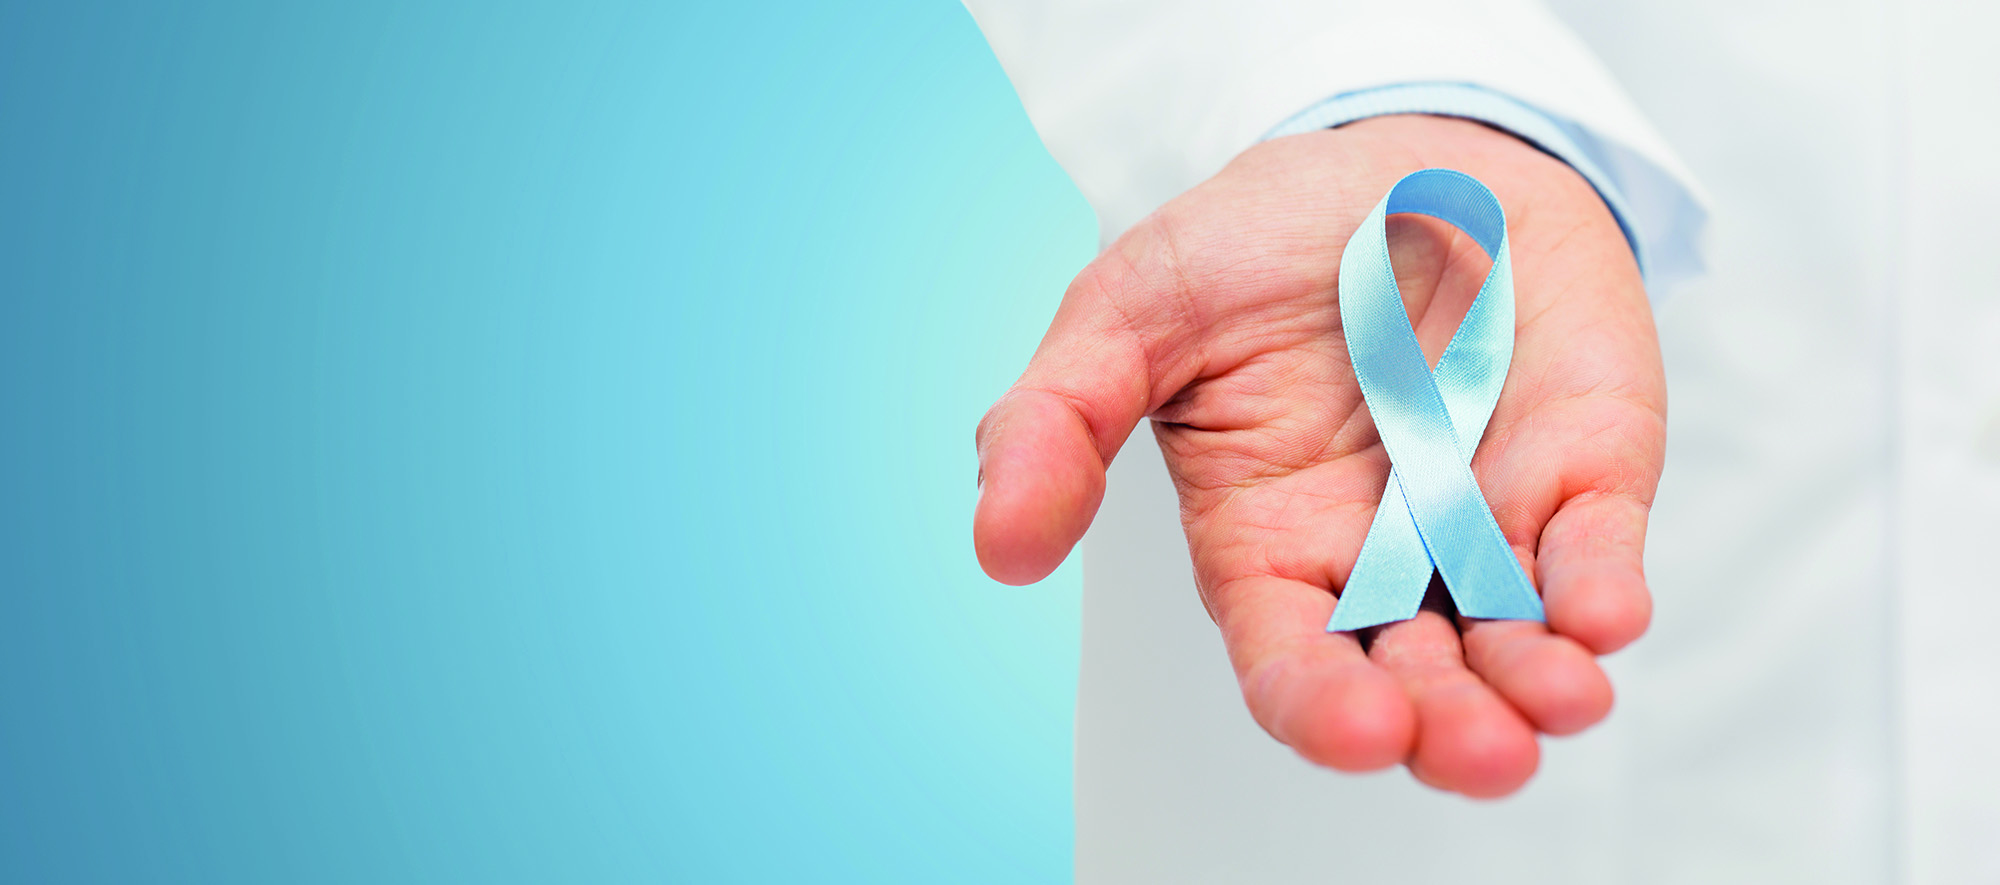 healthcare, profession, people and medicine concept - close up of male doctor hand holding sky blue prostate cancer awareness ribbon over blue background